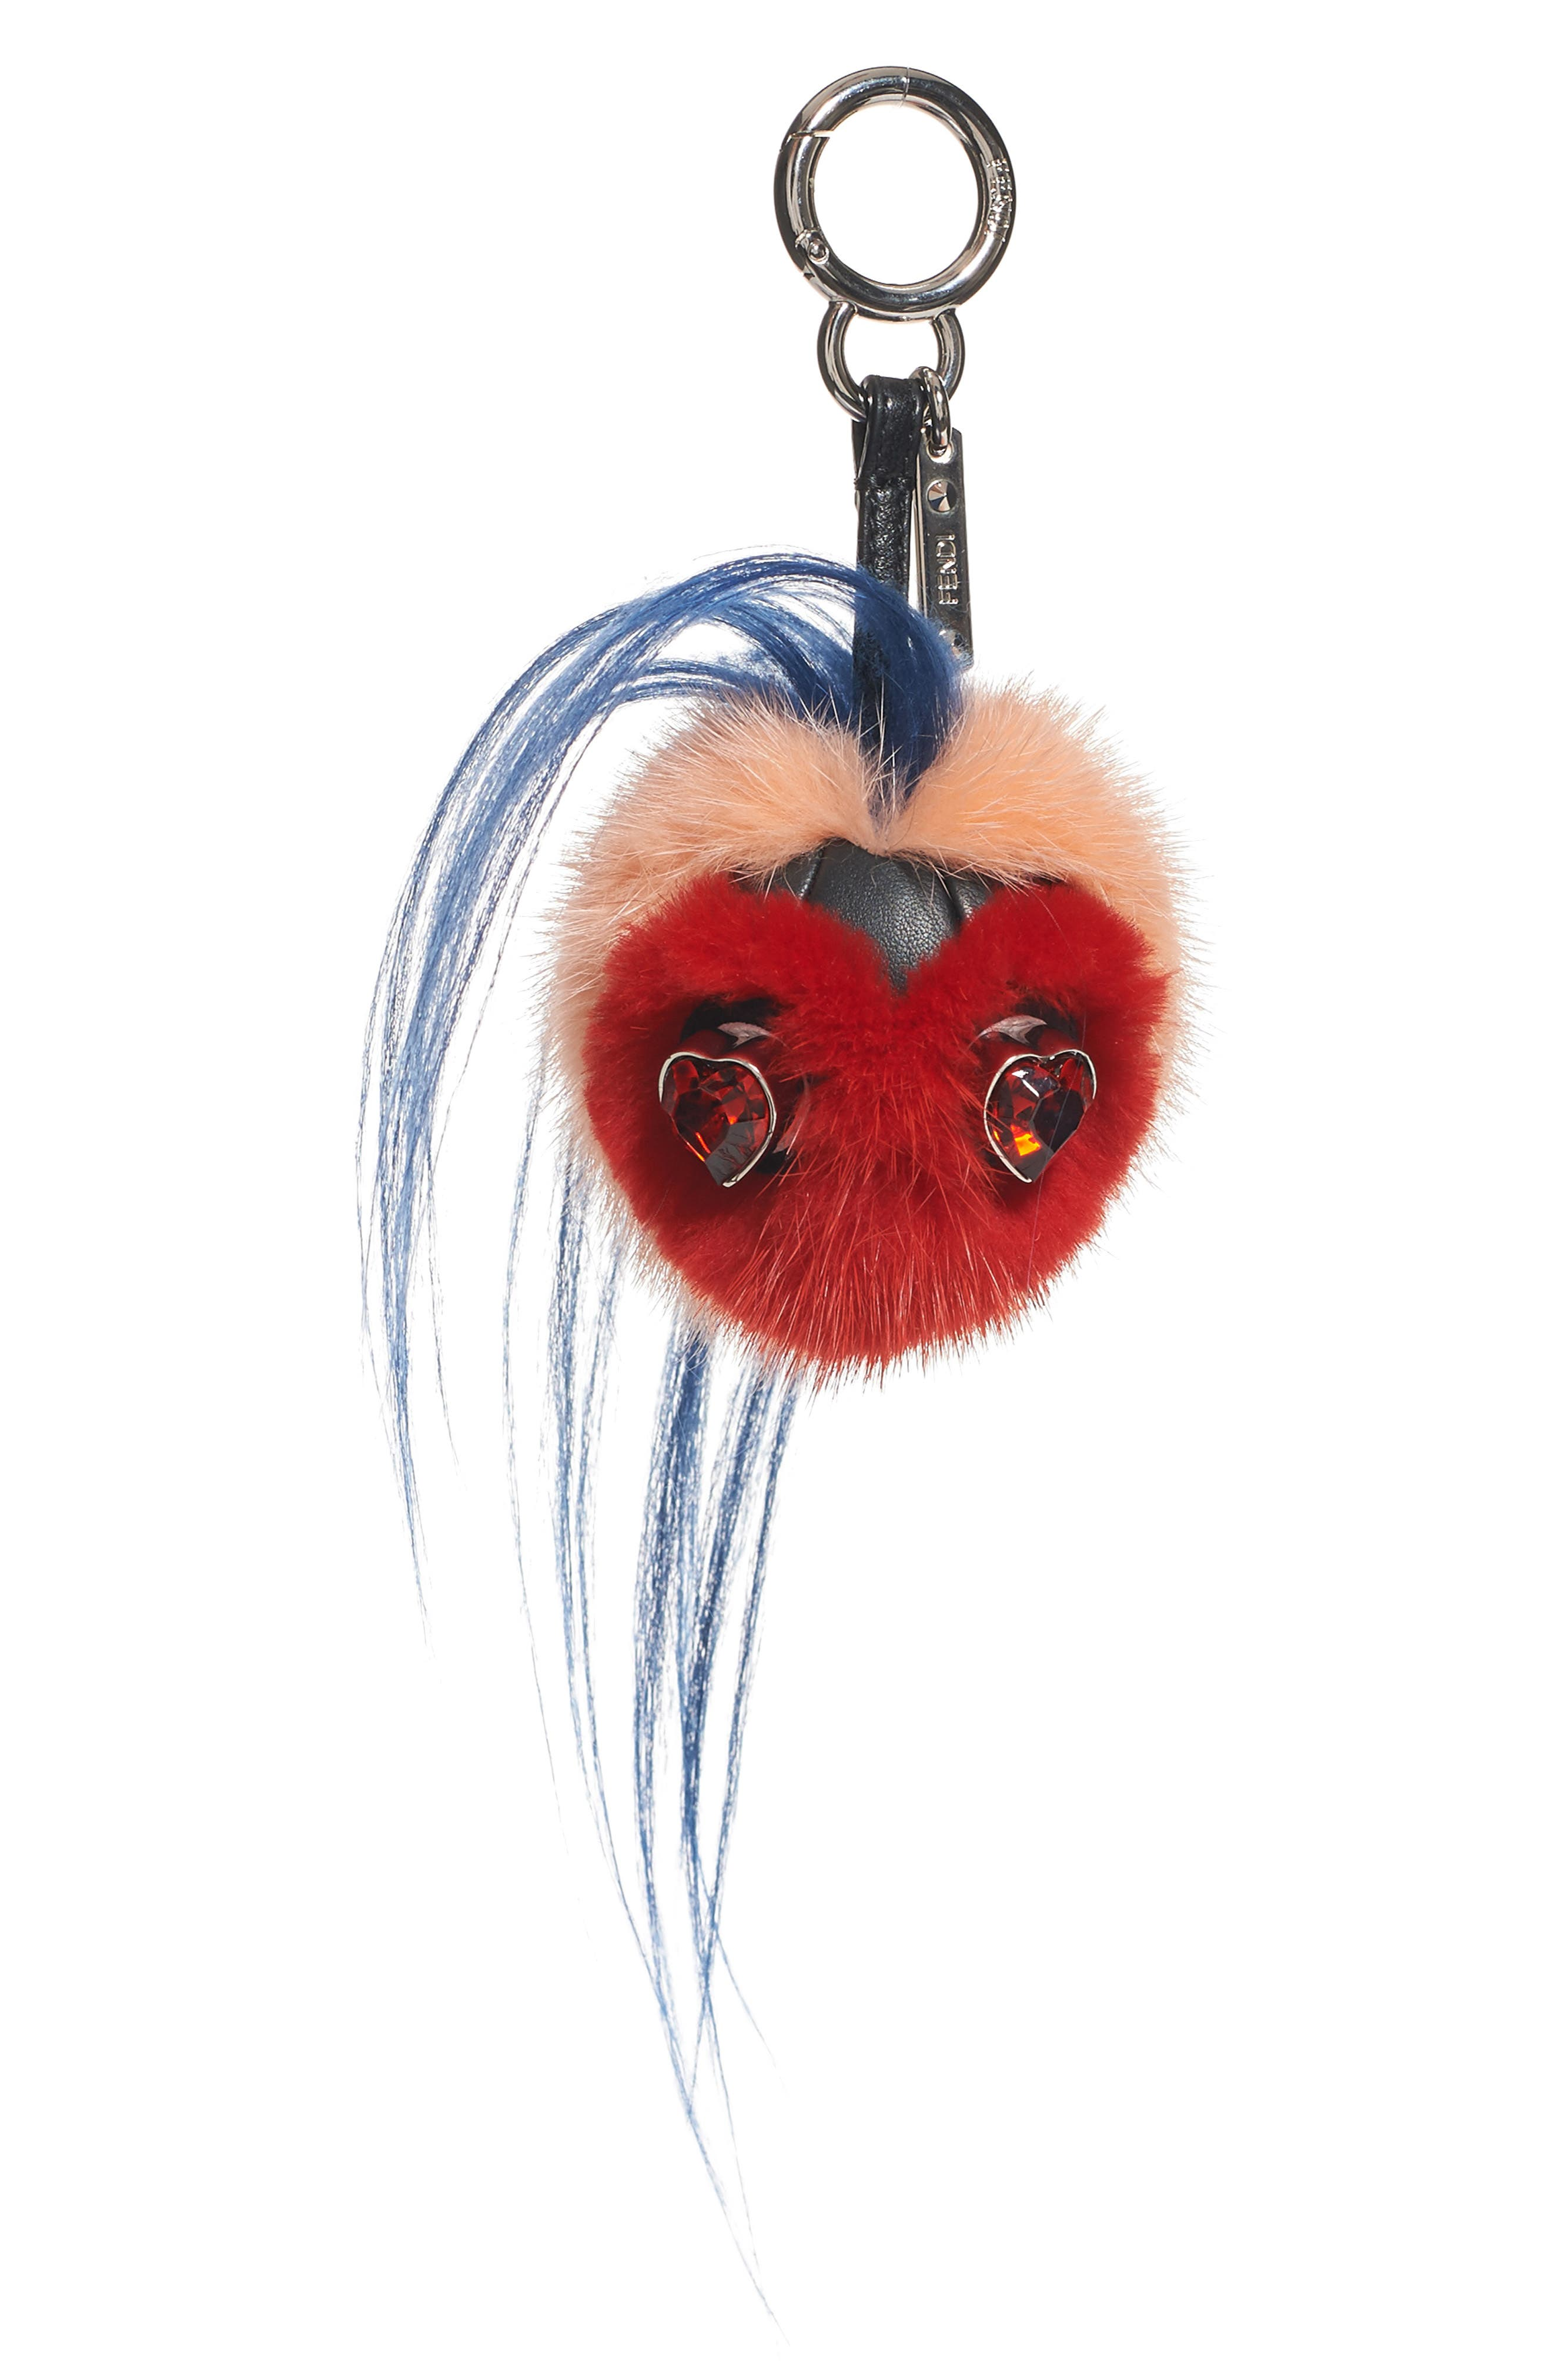 Alternate Image 1 Selected - Fendi Heart Genuine Mink & Goat Fur Bag Charm